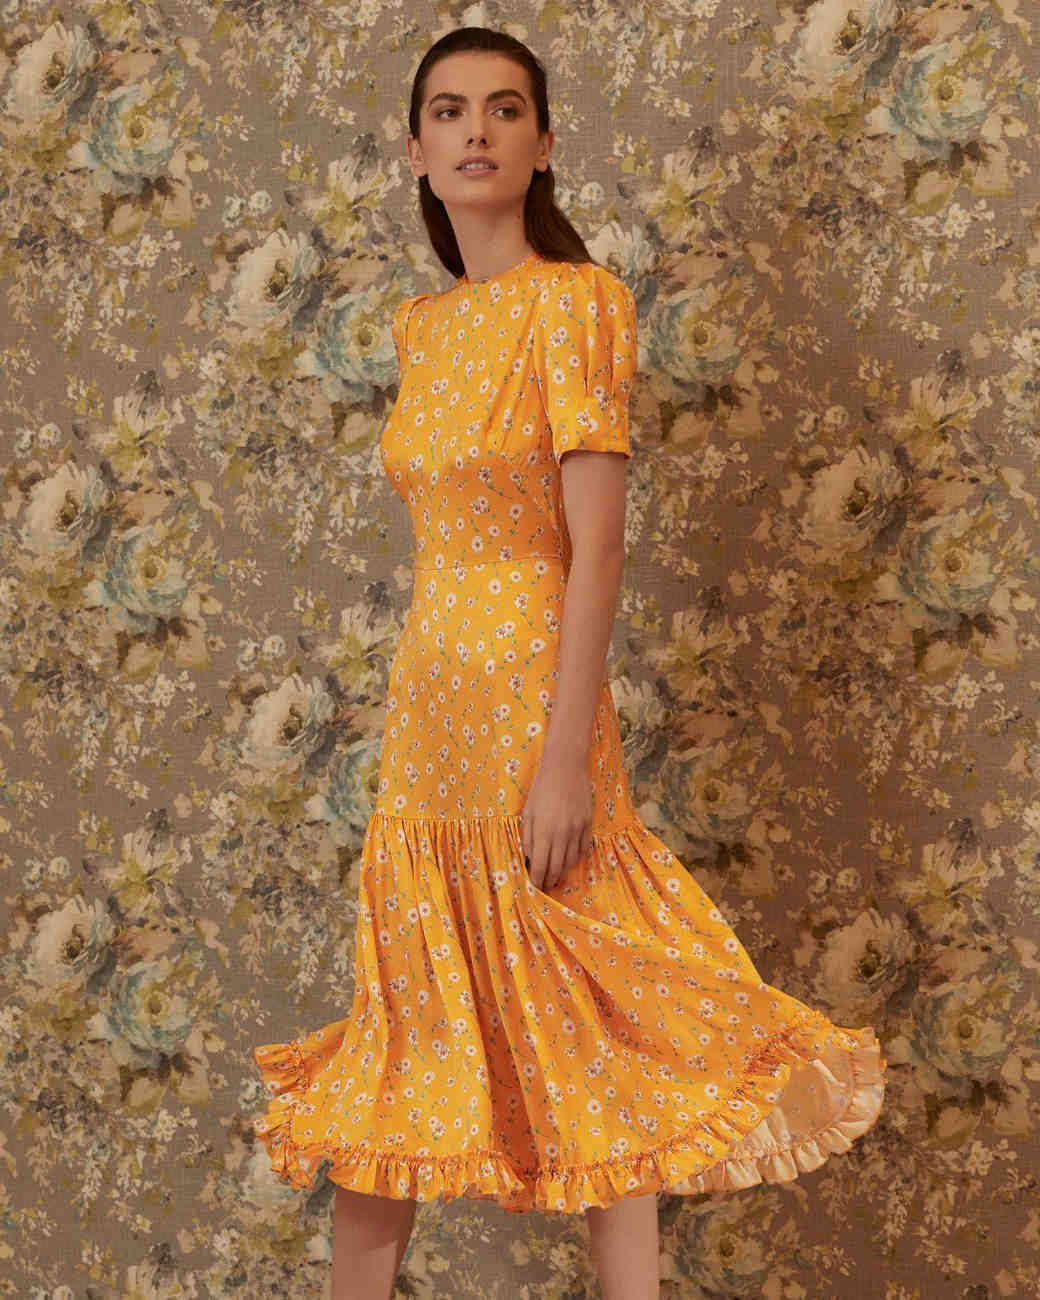 yellow silk midi dress with puff sleeves and daisy floral print